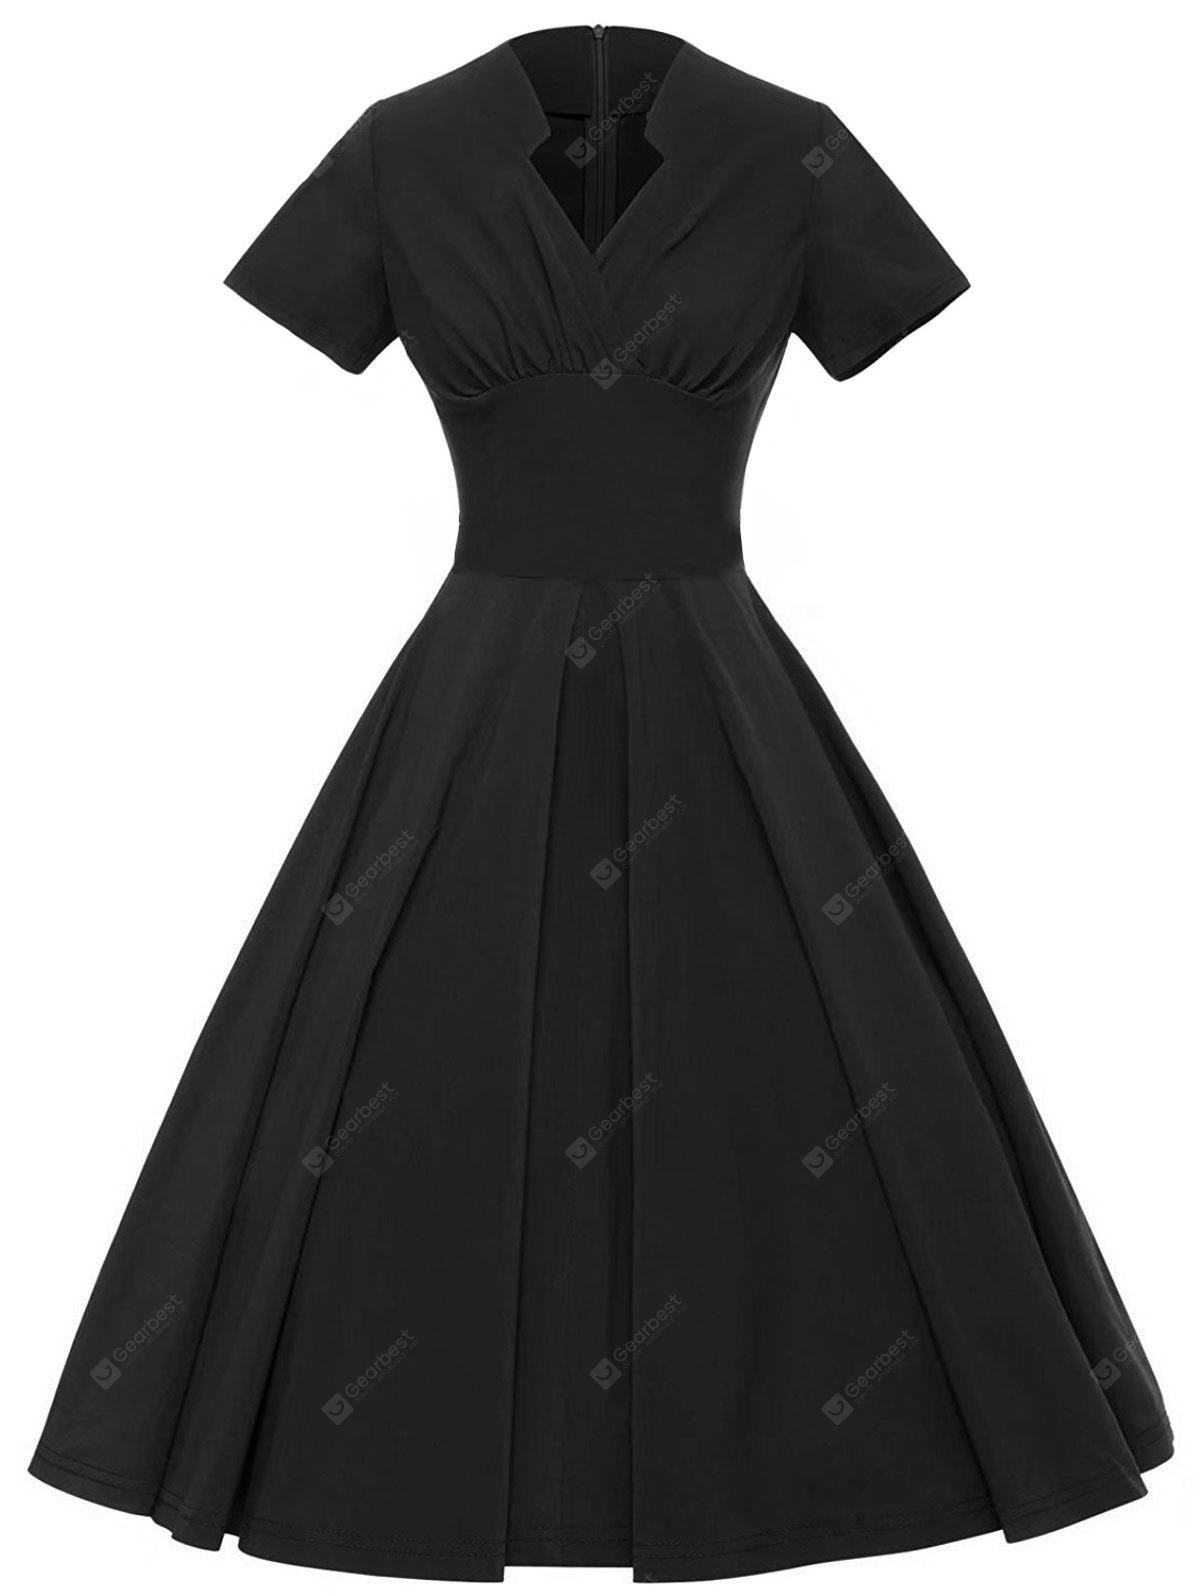 Vintage Ruched Swing Pin Up Dress